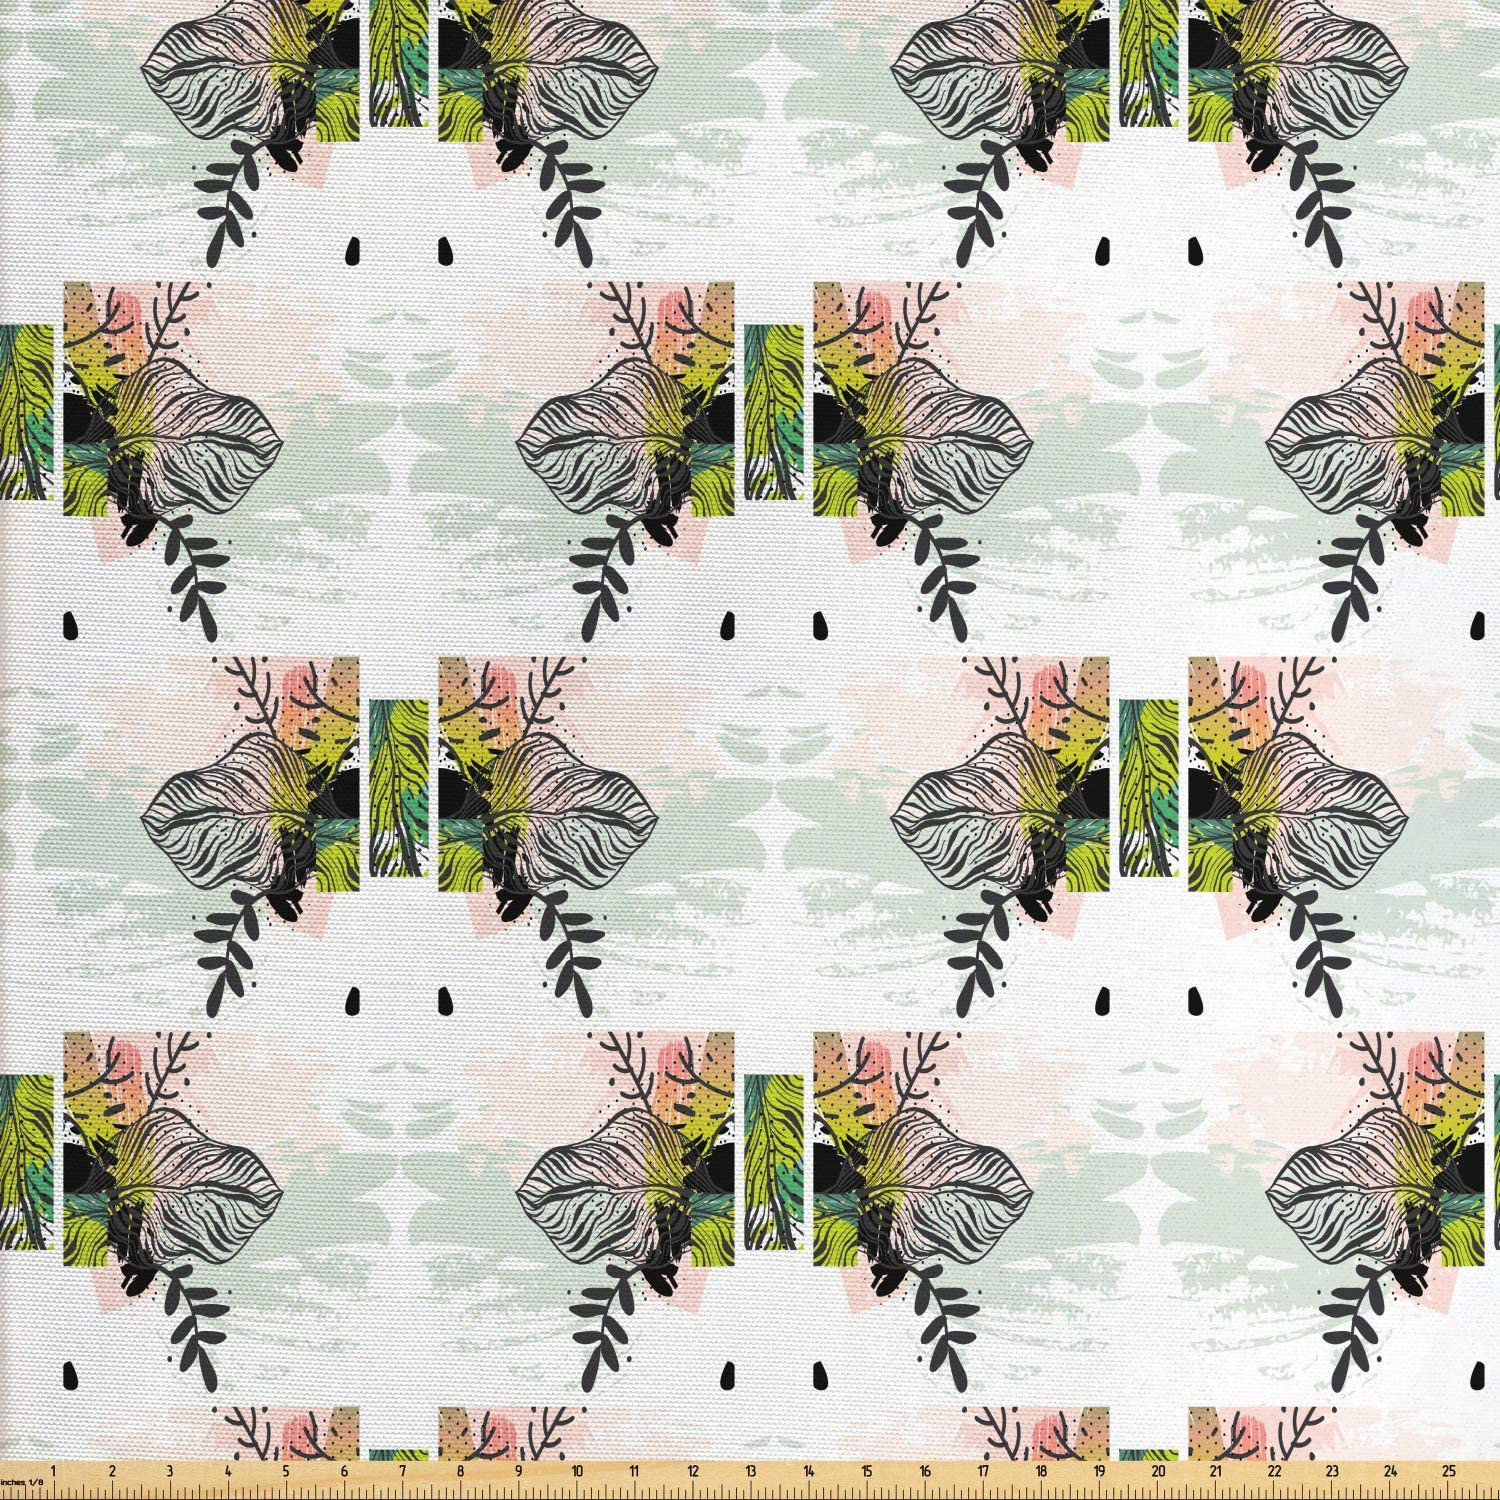 Ambesonne Vintage Tribal Fabric by The Yard, Summer Jungle Inspired Design of Pastel Strokes and Exotic Leaves, Decorative Fabric for Upholstery and Home Accents, 1 Yard, Multicolor